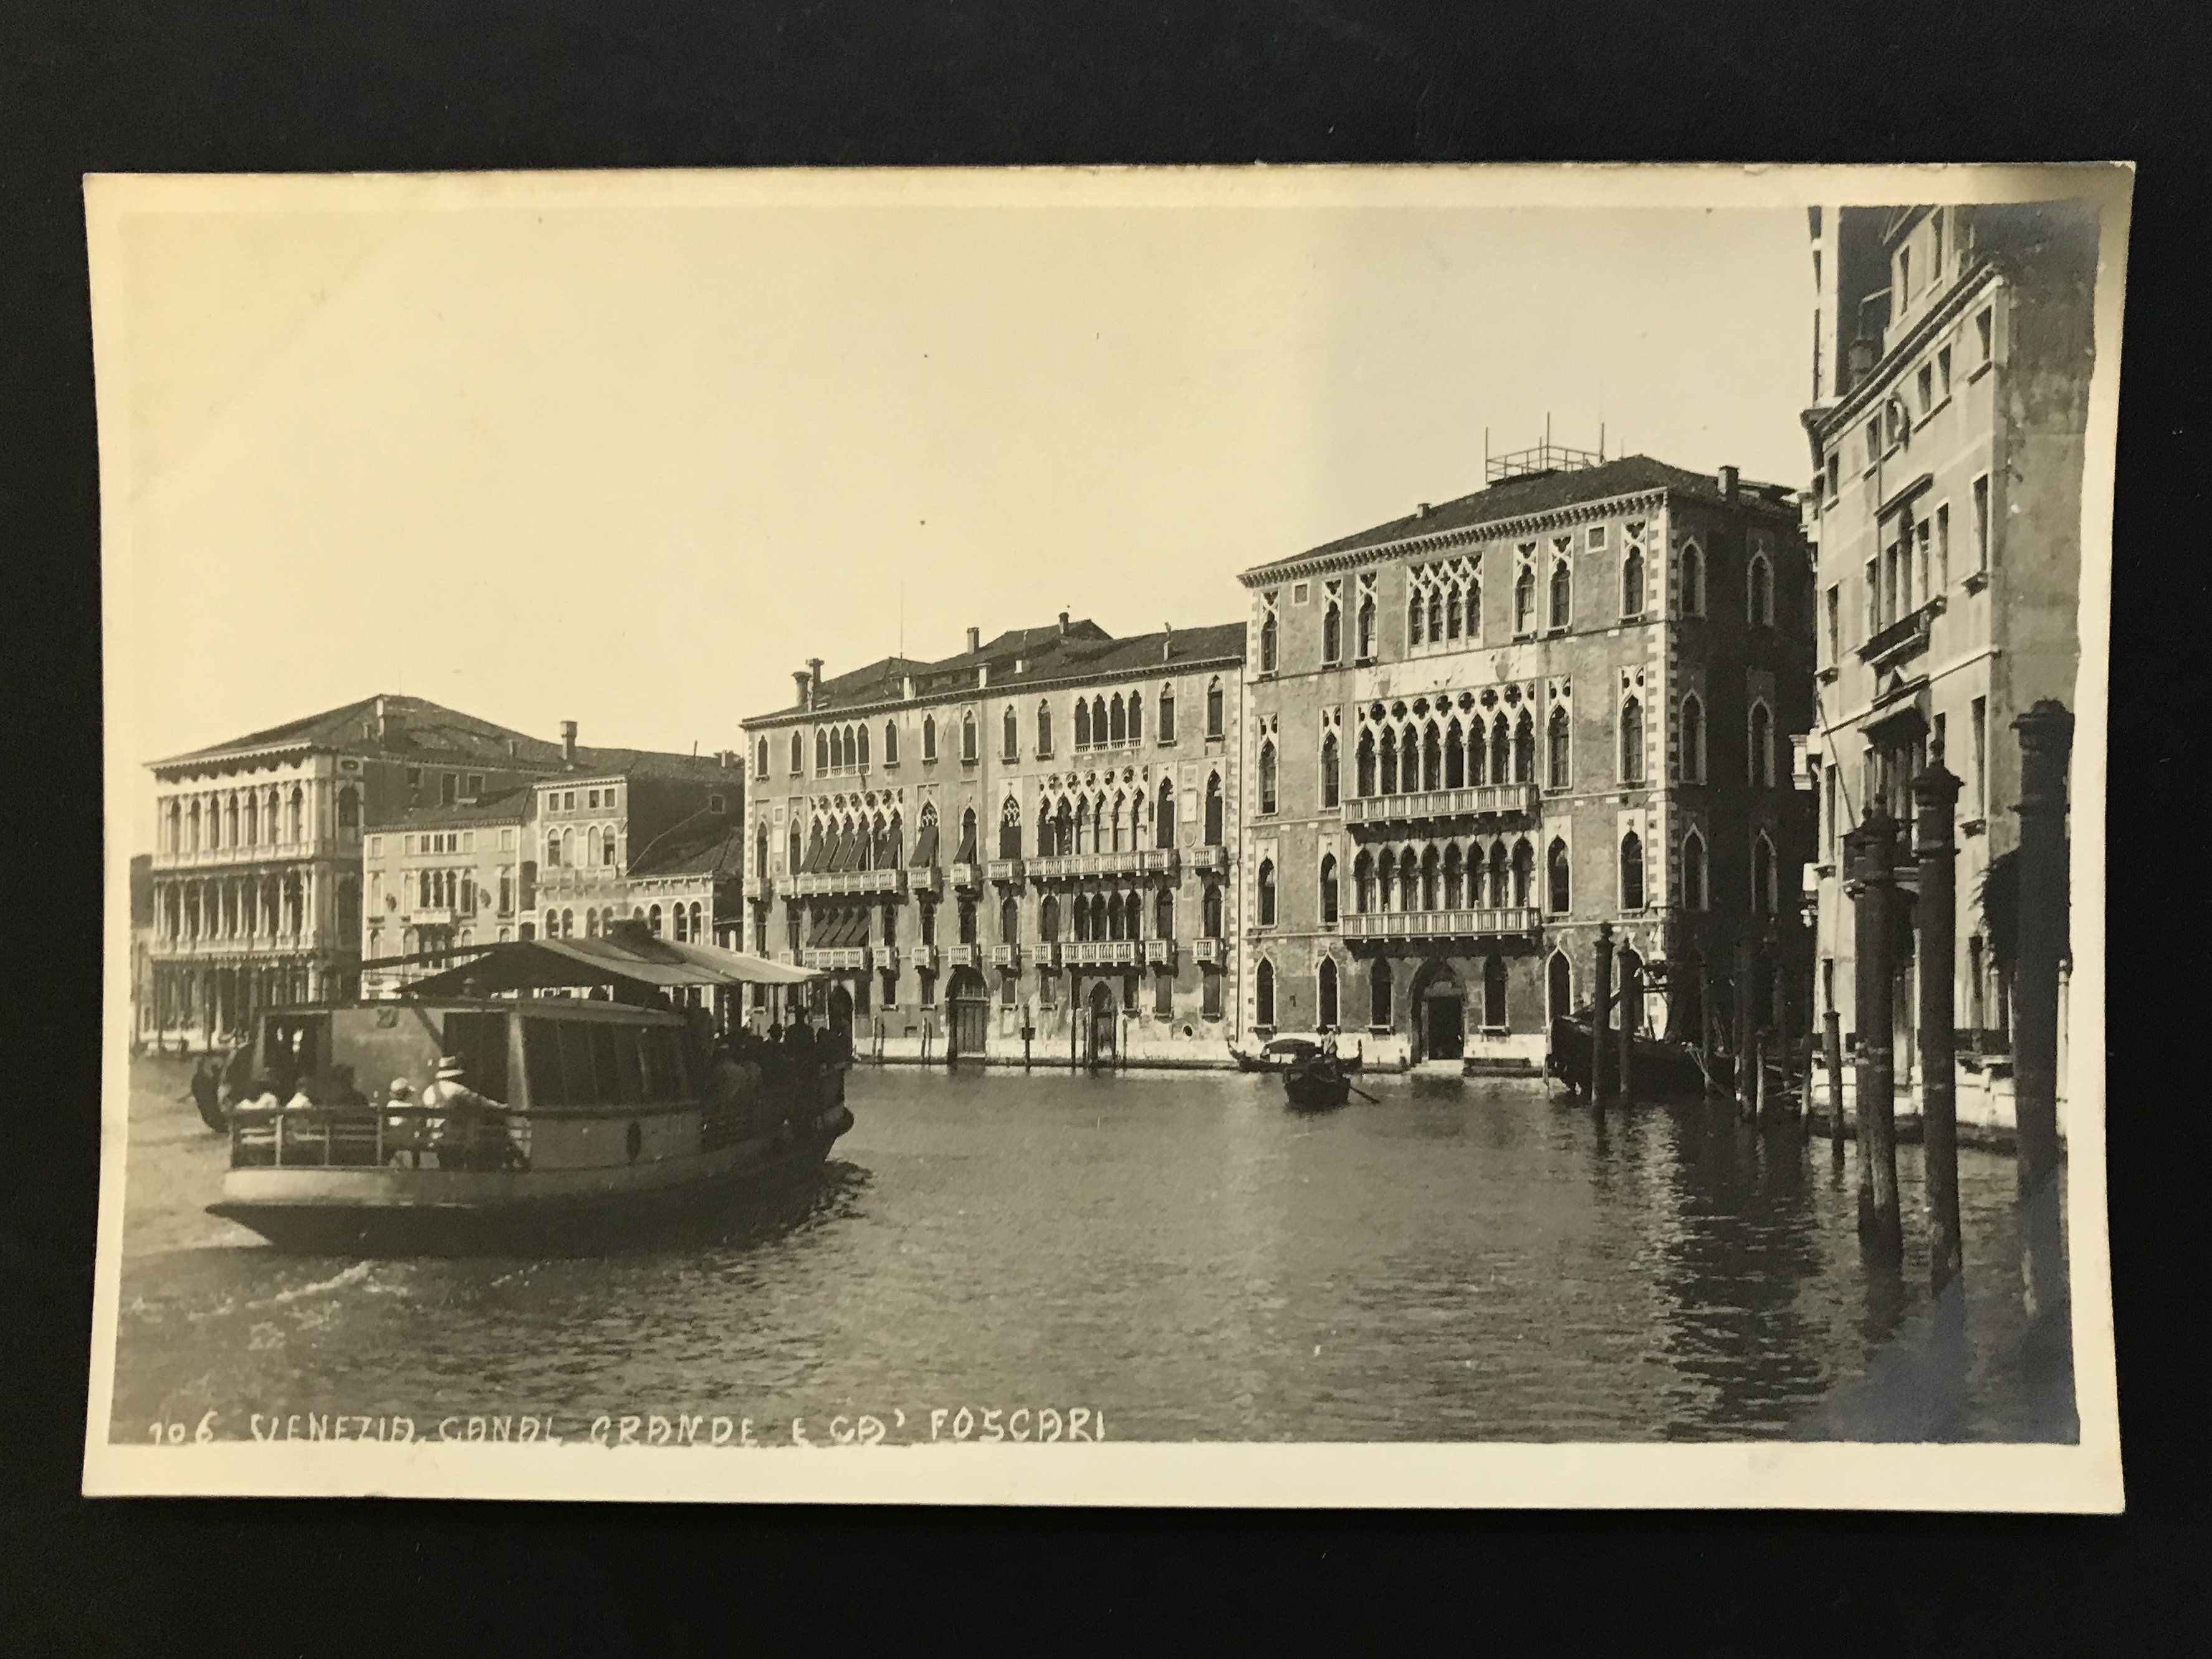 SELECTION OF VENICE RELATED POSTCARDS - Image 37 of 53